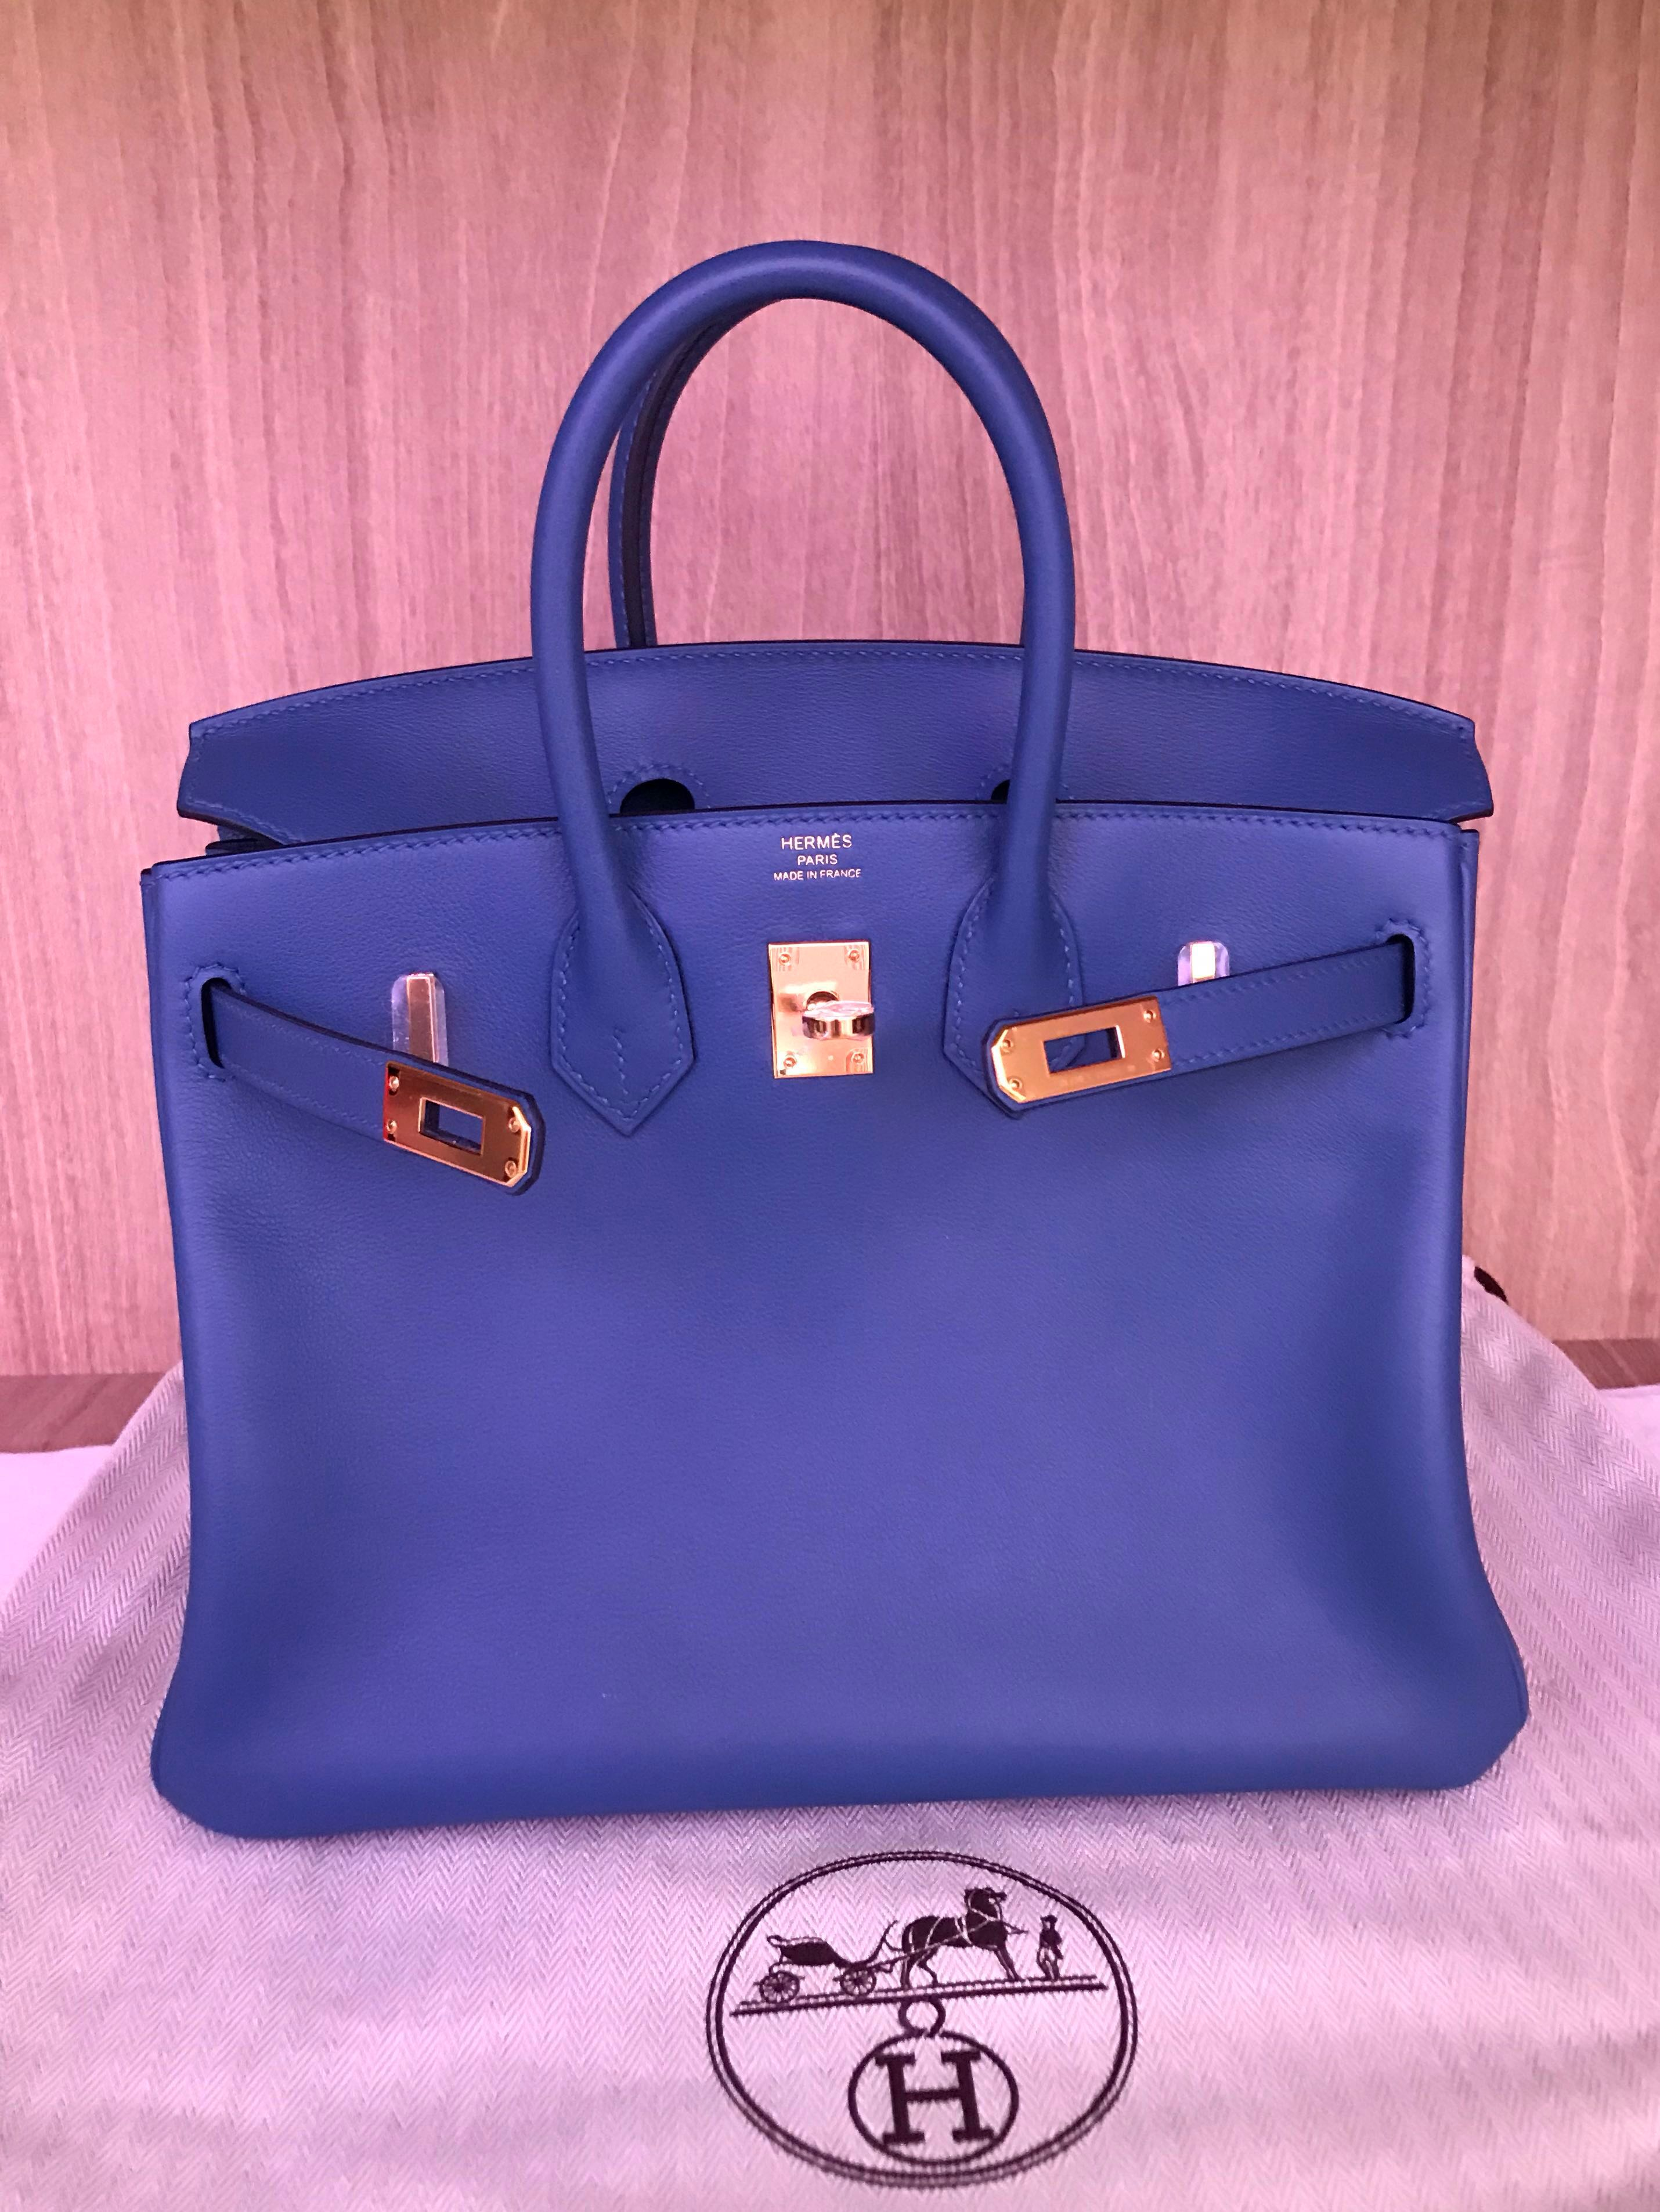 c9842bcb86 Hermes Birkin 25 C stamp BNIB full set includes Boutique receipt ...